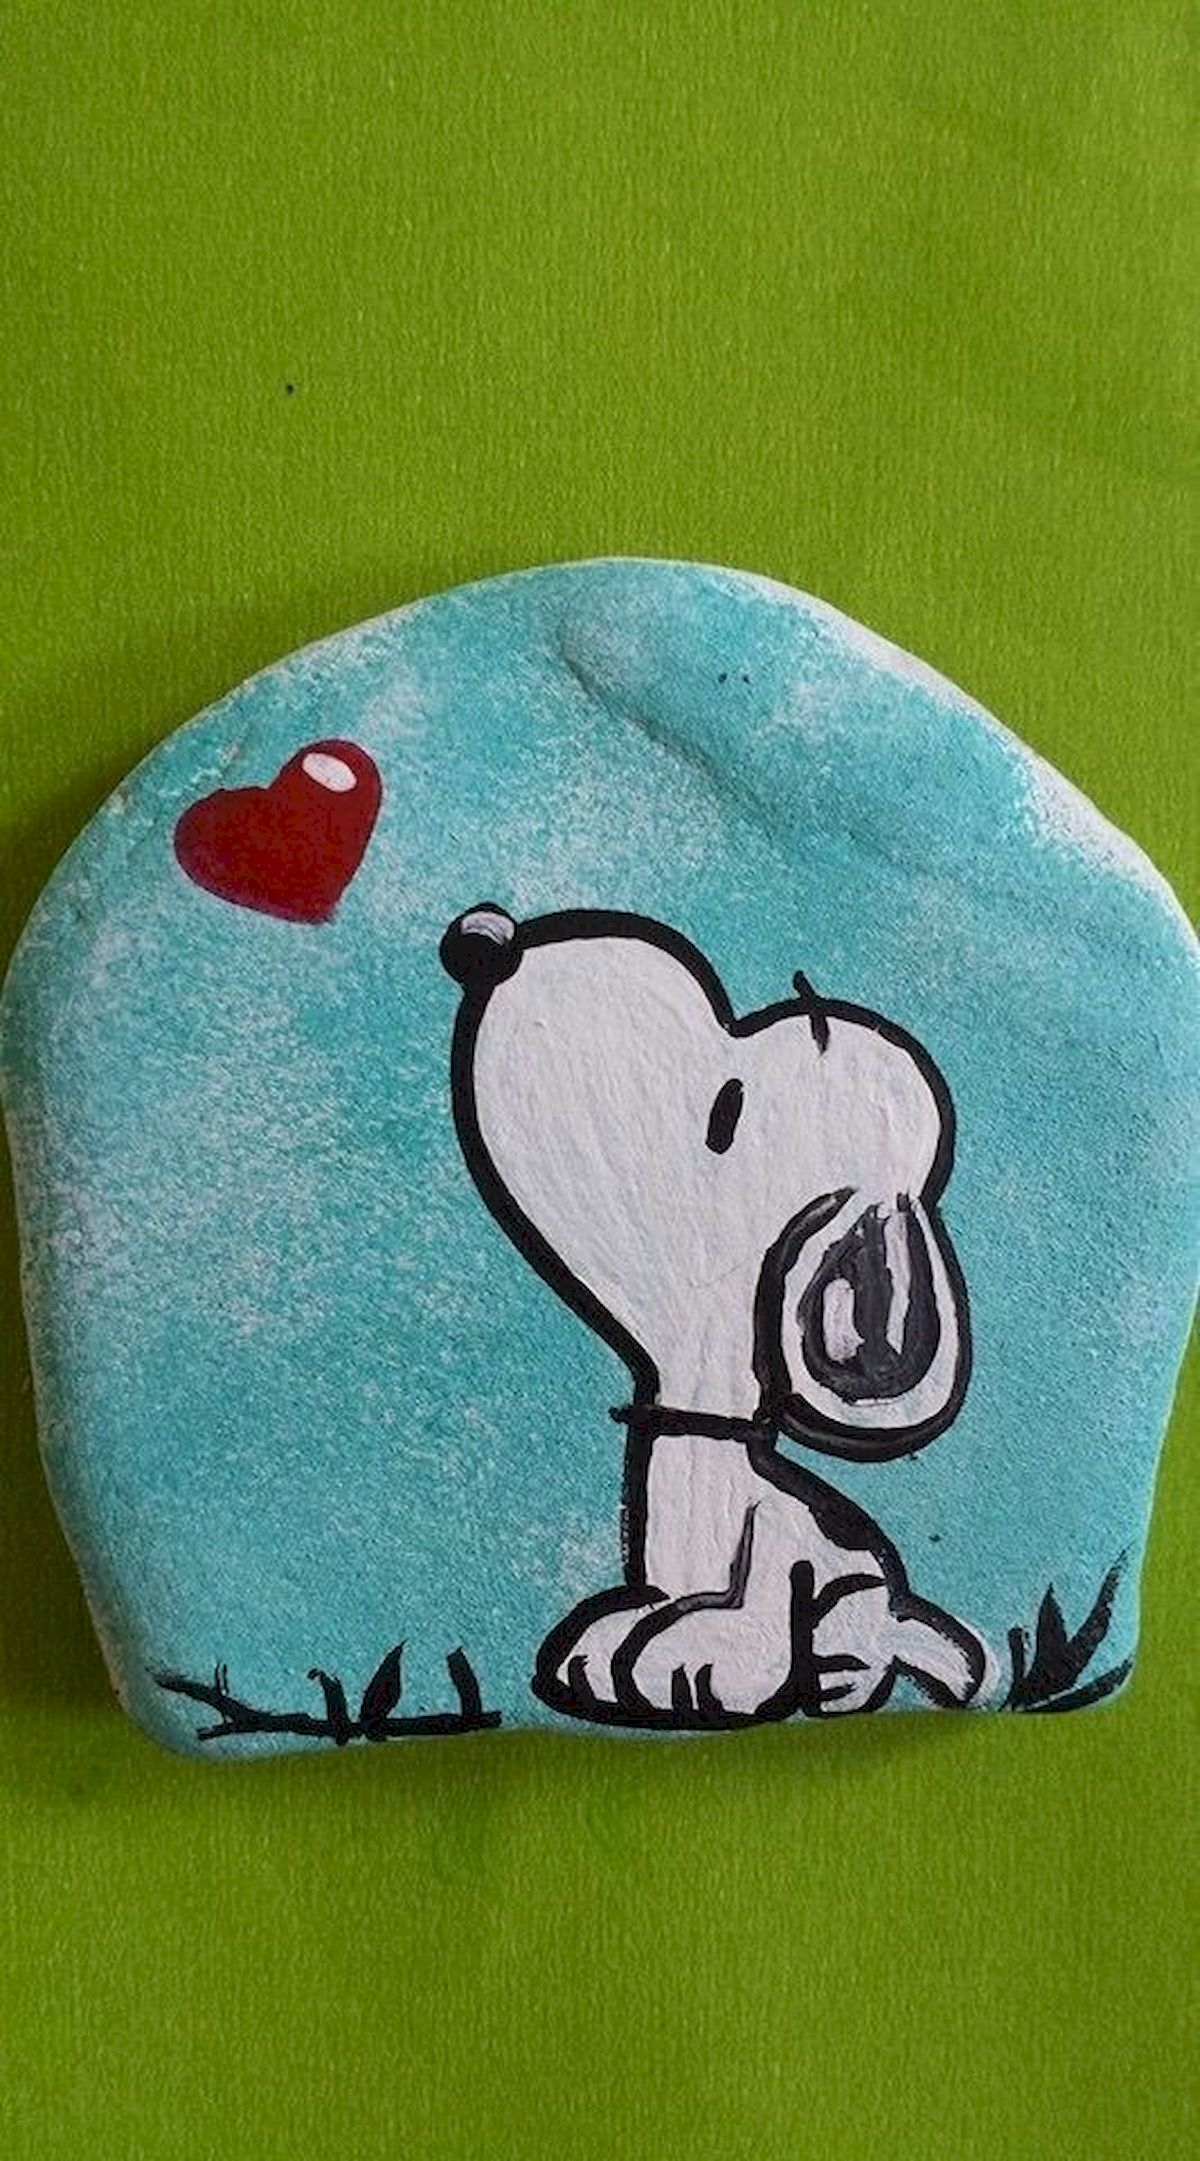 40 Favorite DIY Painted Rocks Animals Dogs for Summer Ideas (14)